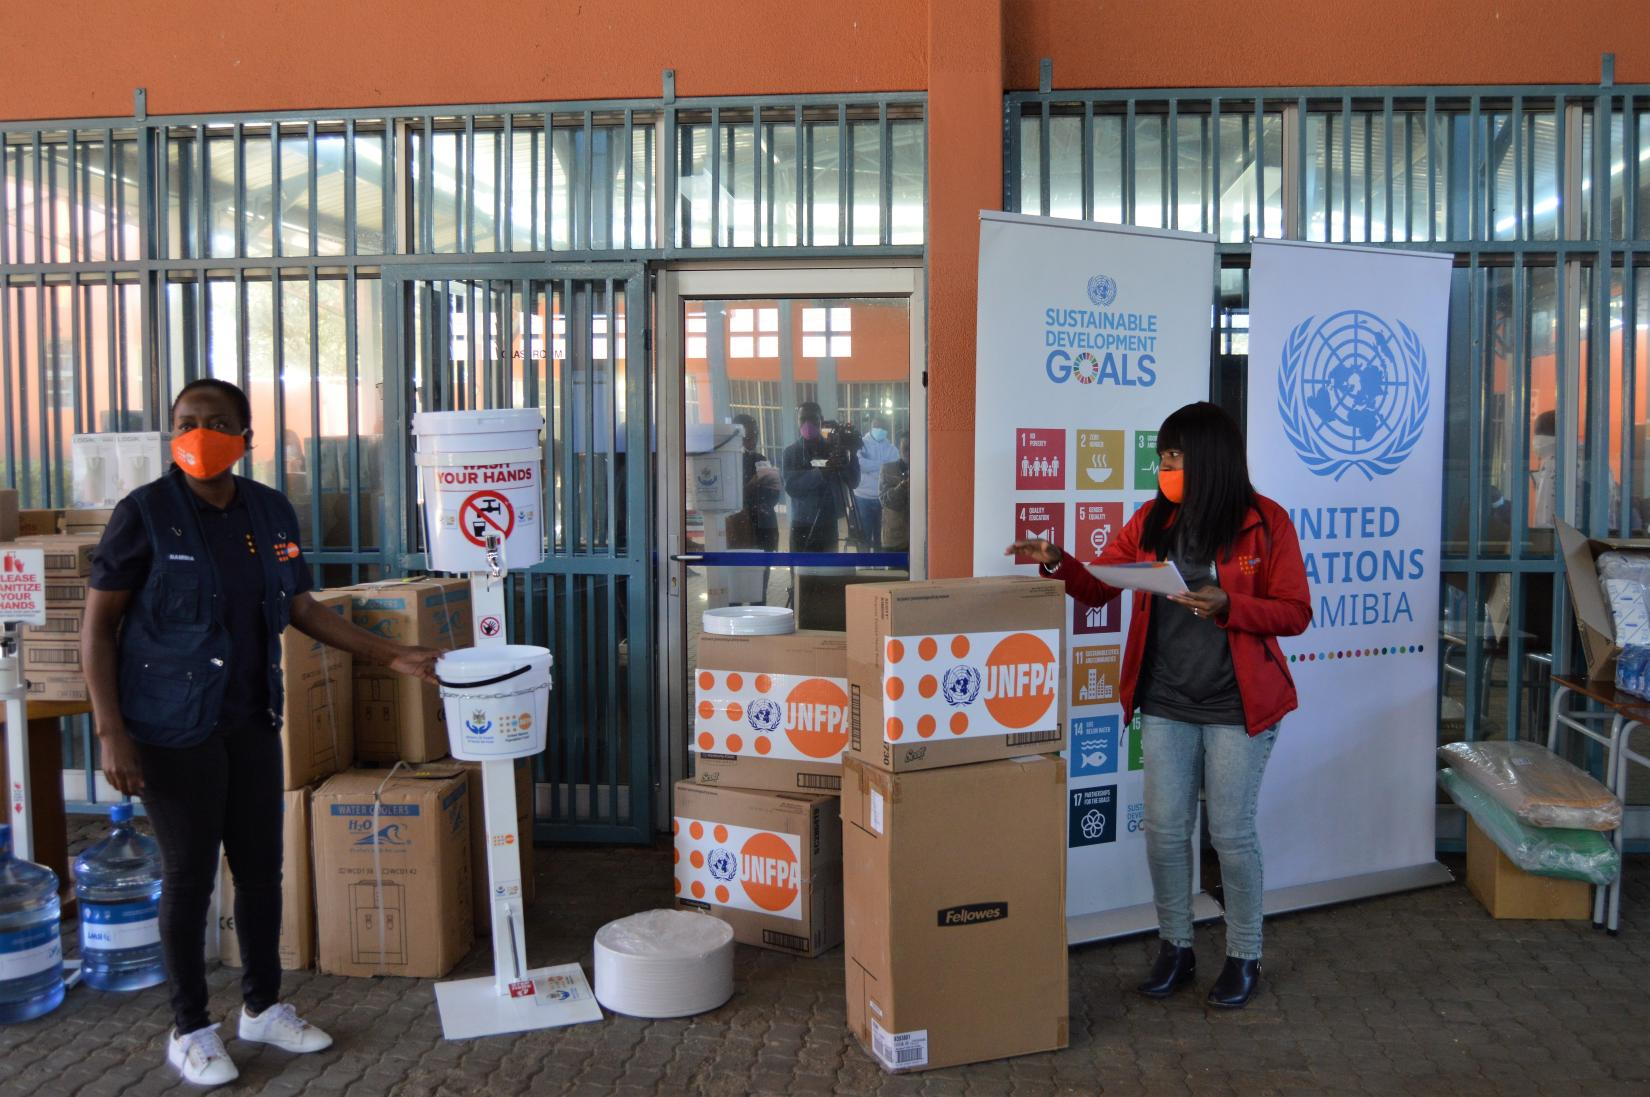 The donation included equipment from UNAIDS, UNFPA, UNDP, UNESCO, UNICEF, WFP, WHO